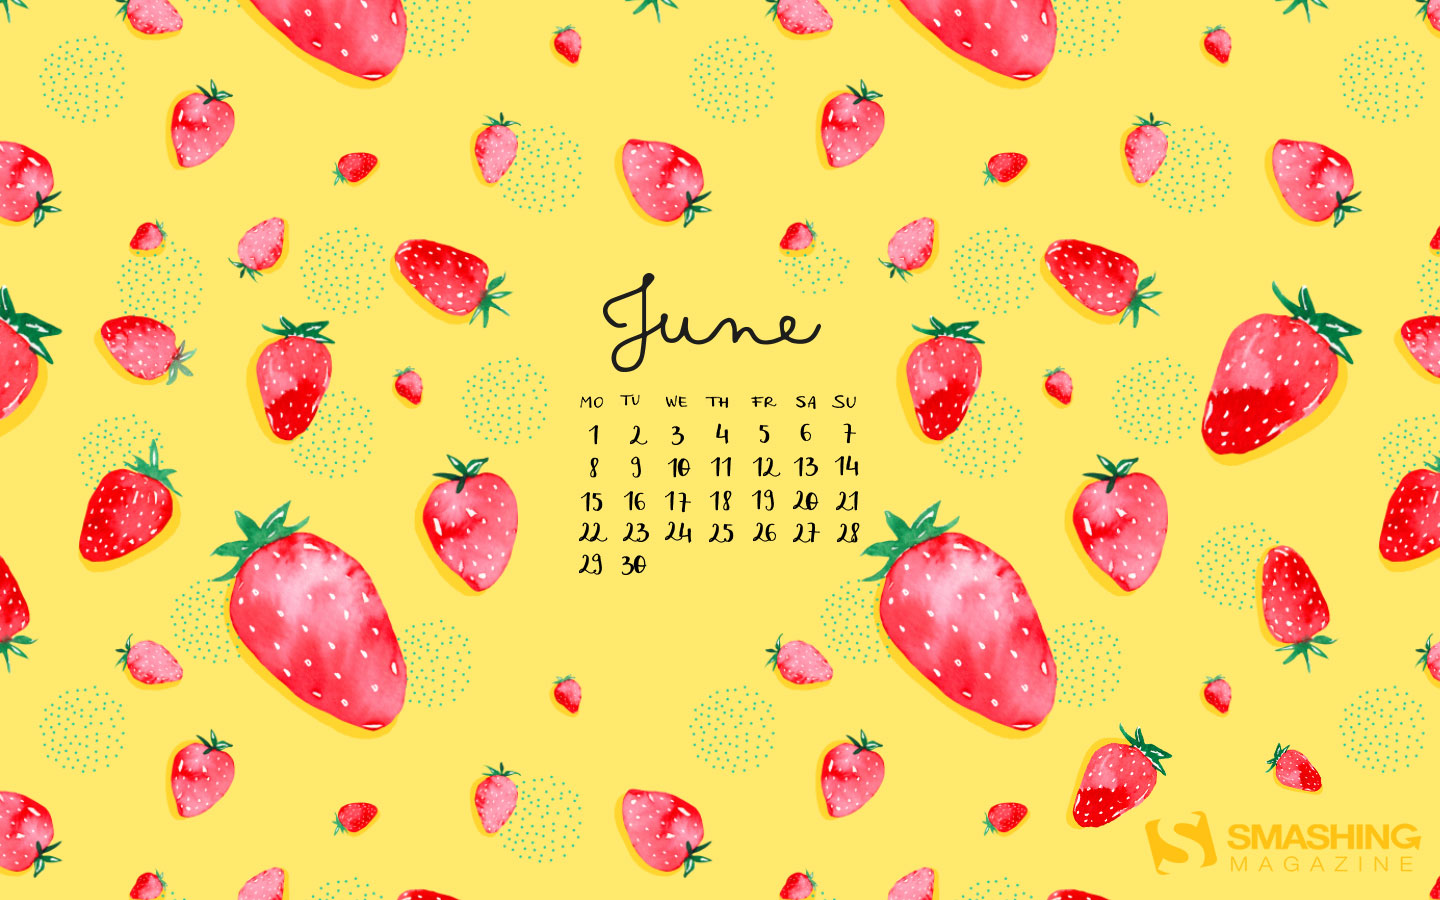 Desktop Wallpaper Calendars June 2015 Smashing Magazine 1440x900